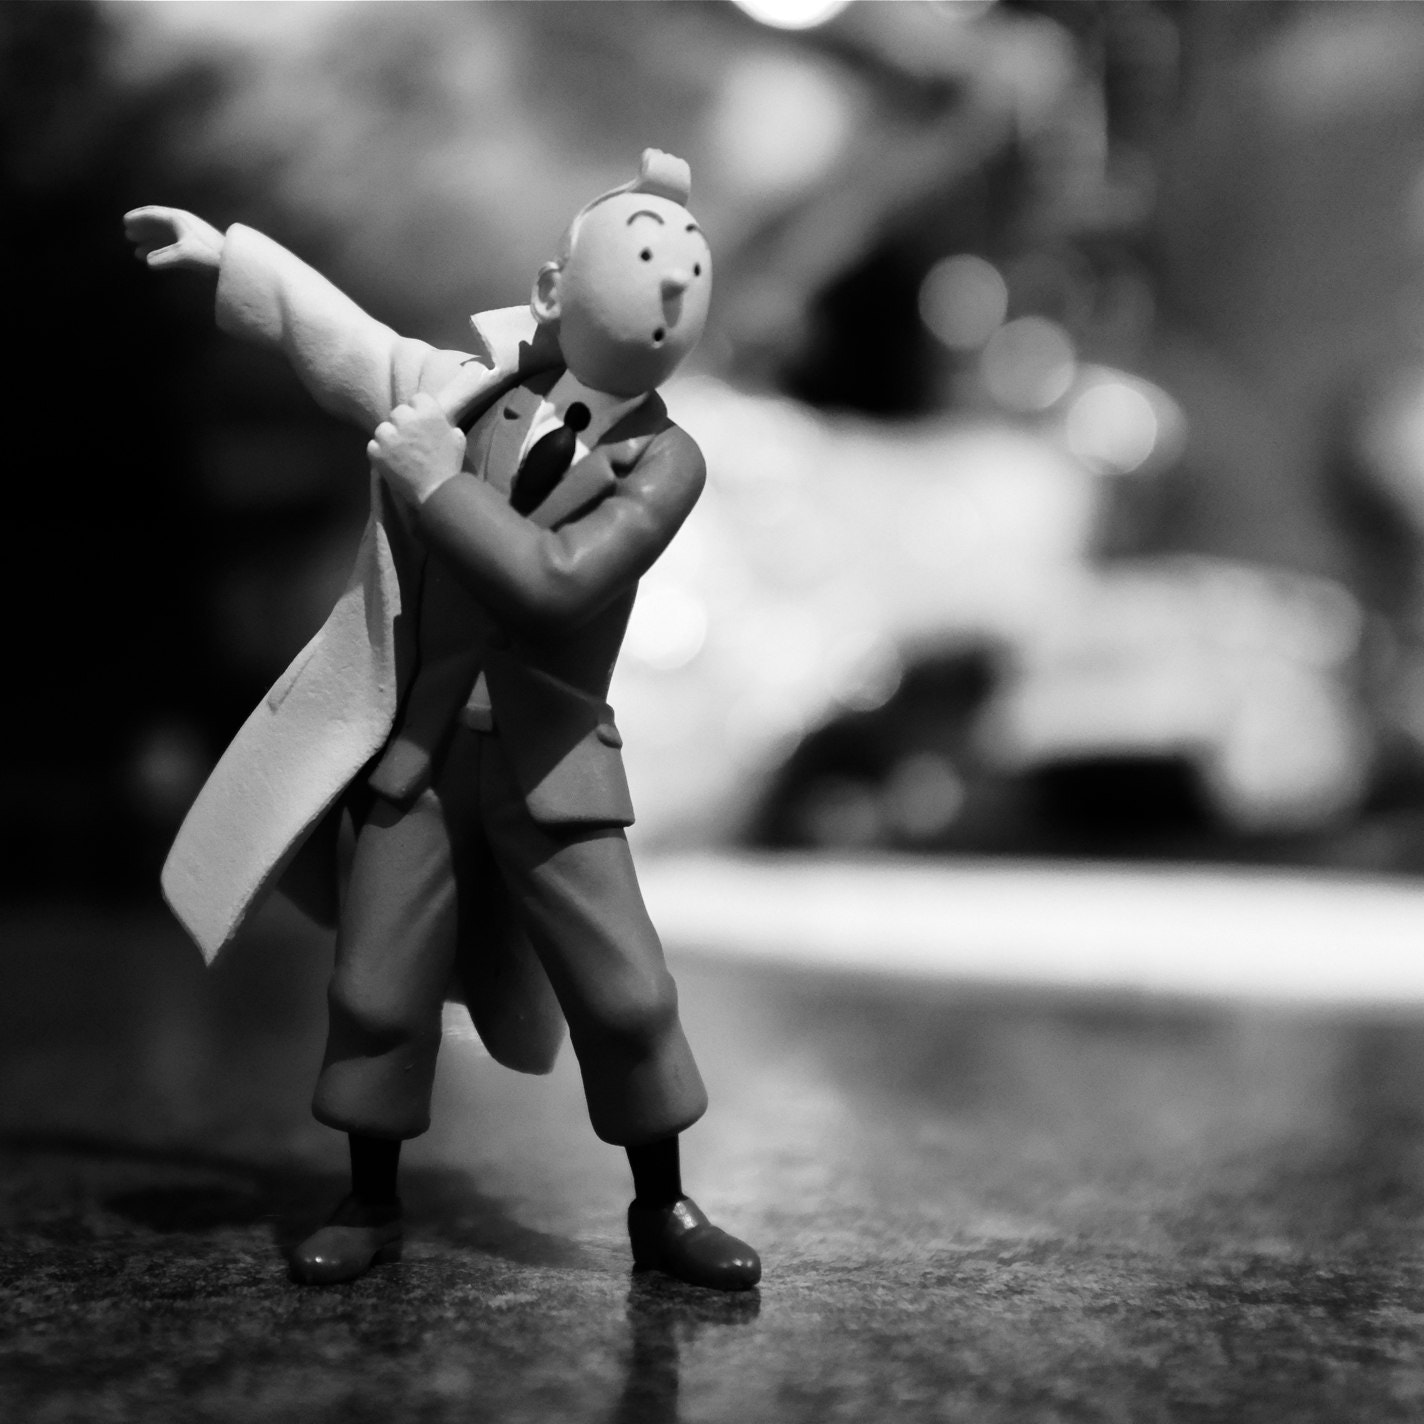 Photograph Tintin - Action Reporter by Mark Prince on 500px